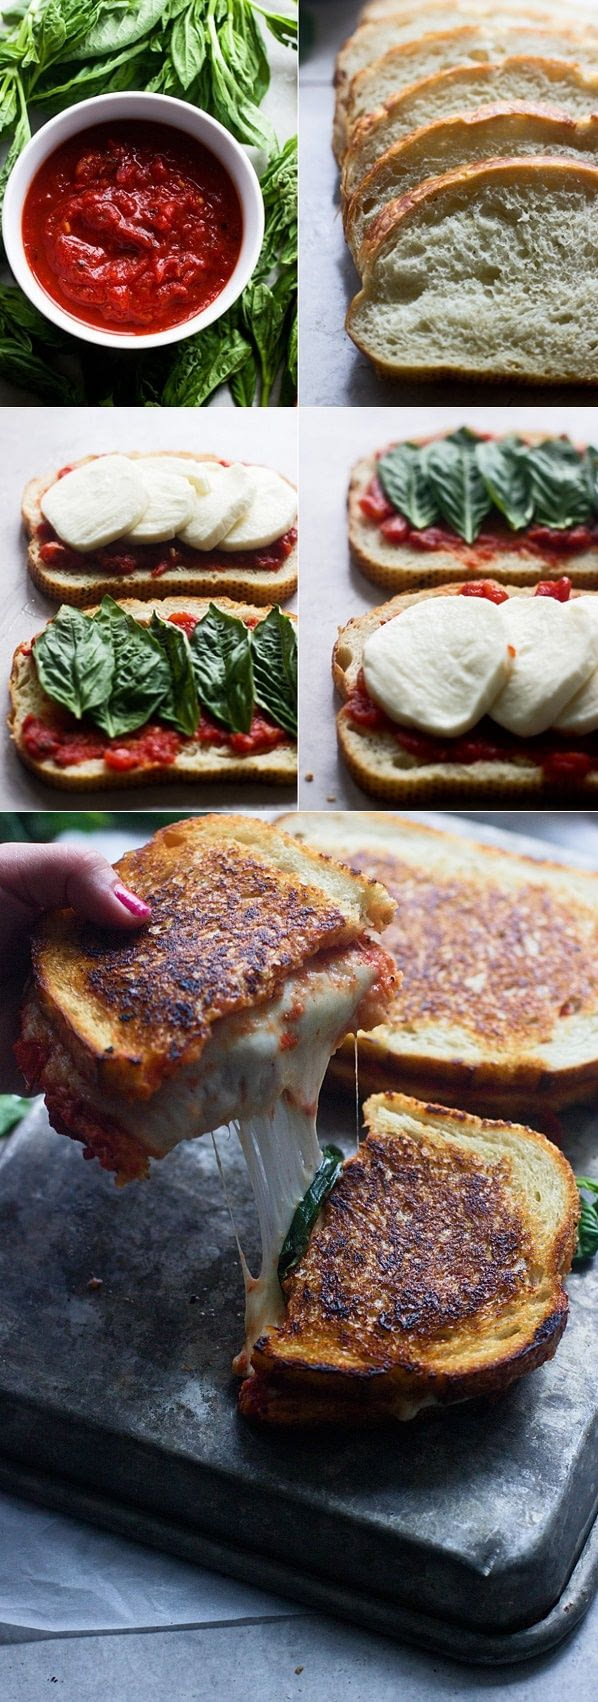 food porn, garlic bread grilled cheese